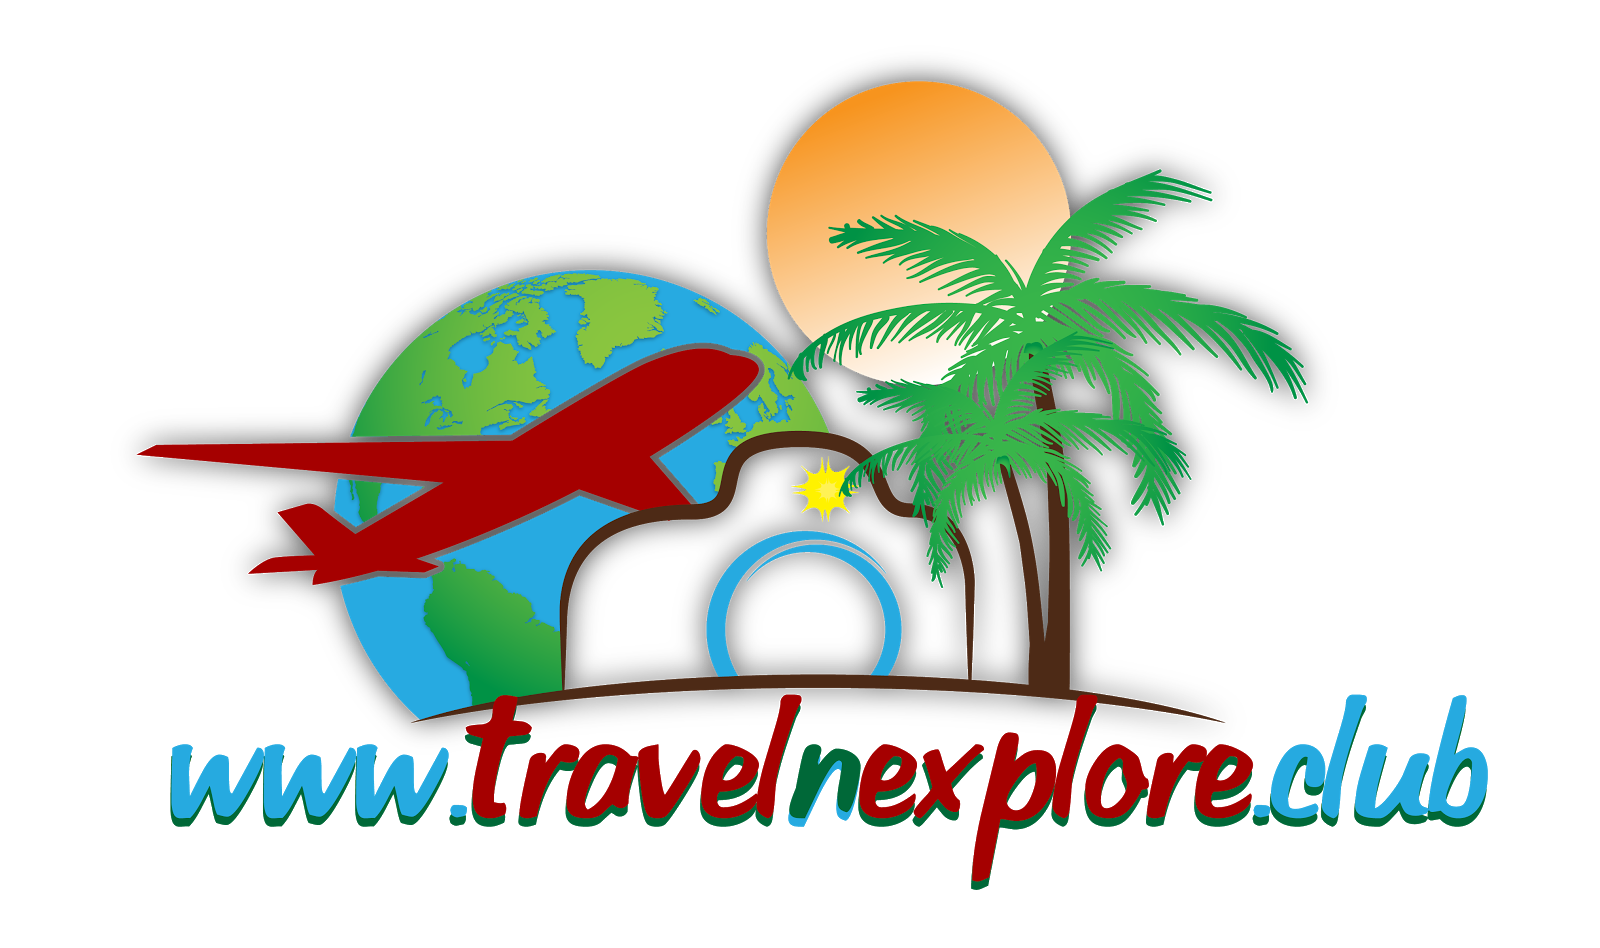 www.travelnexplore.club